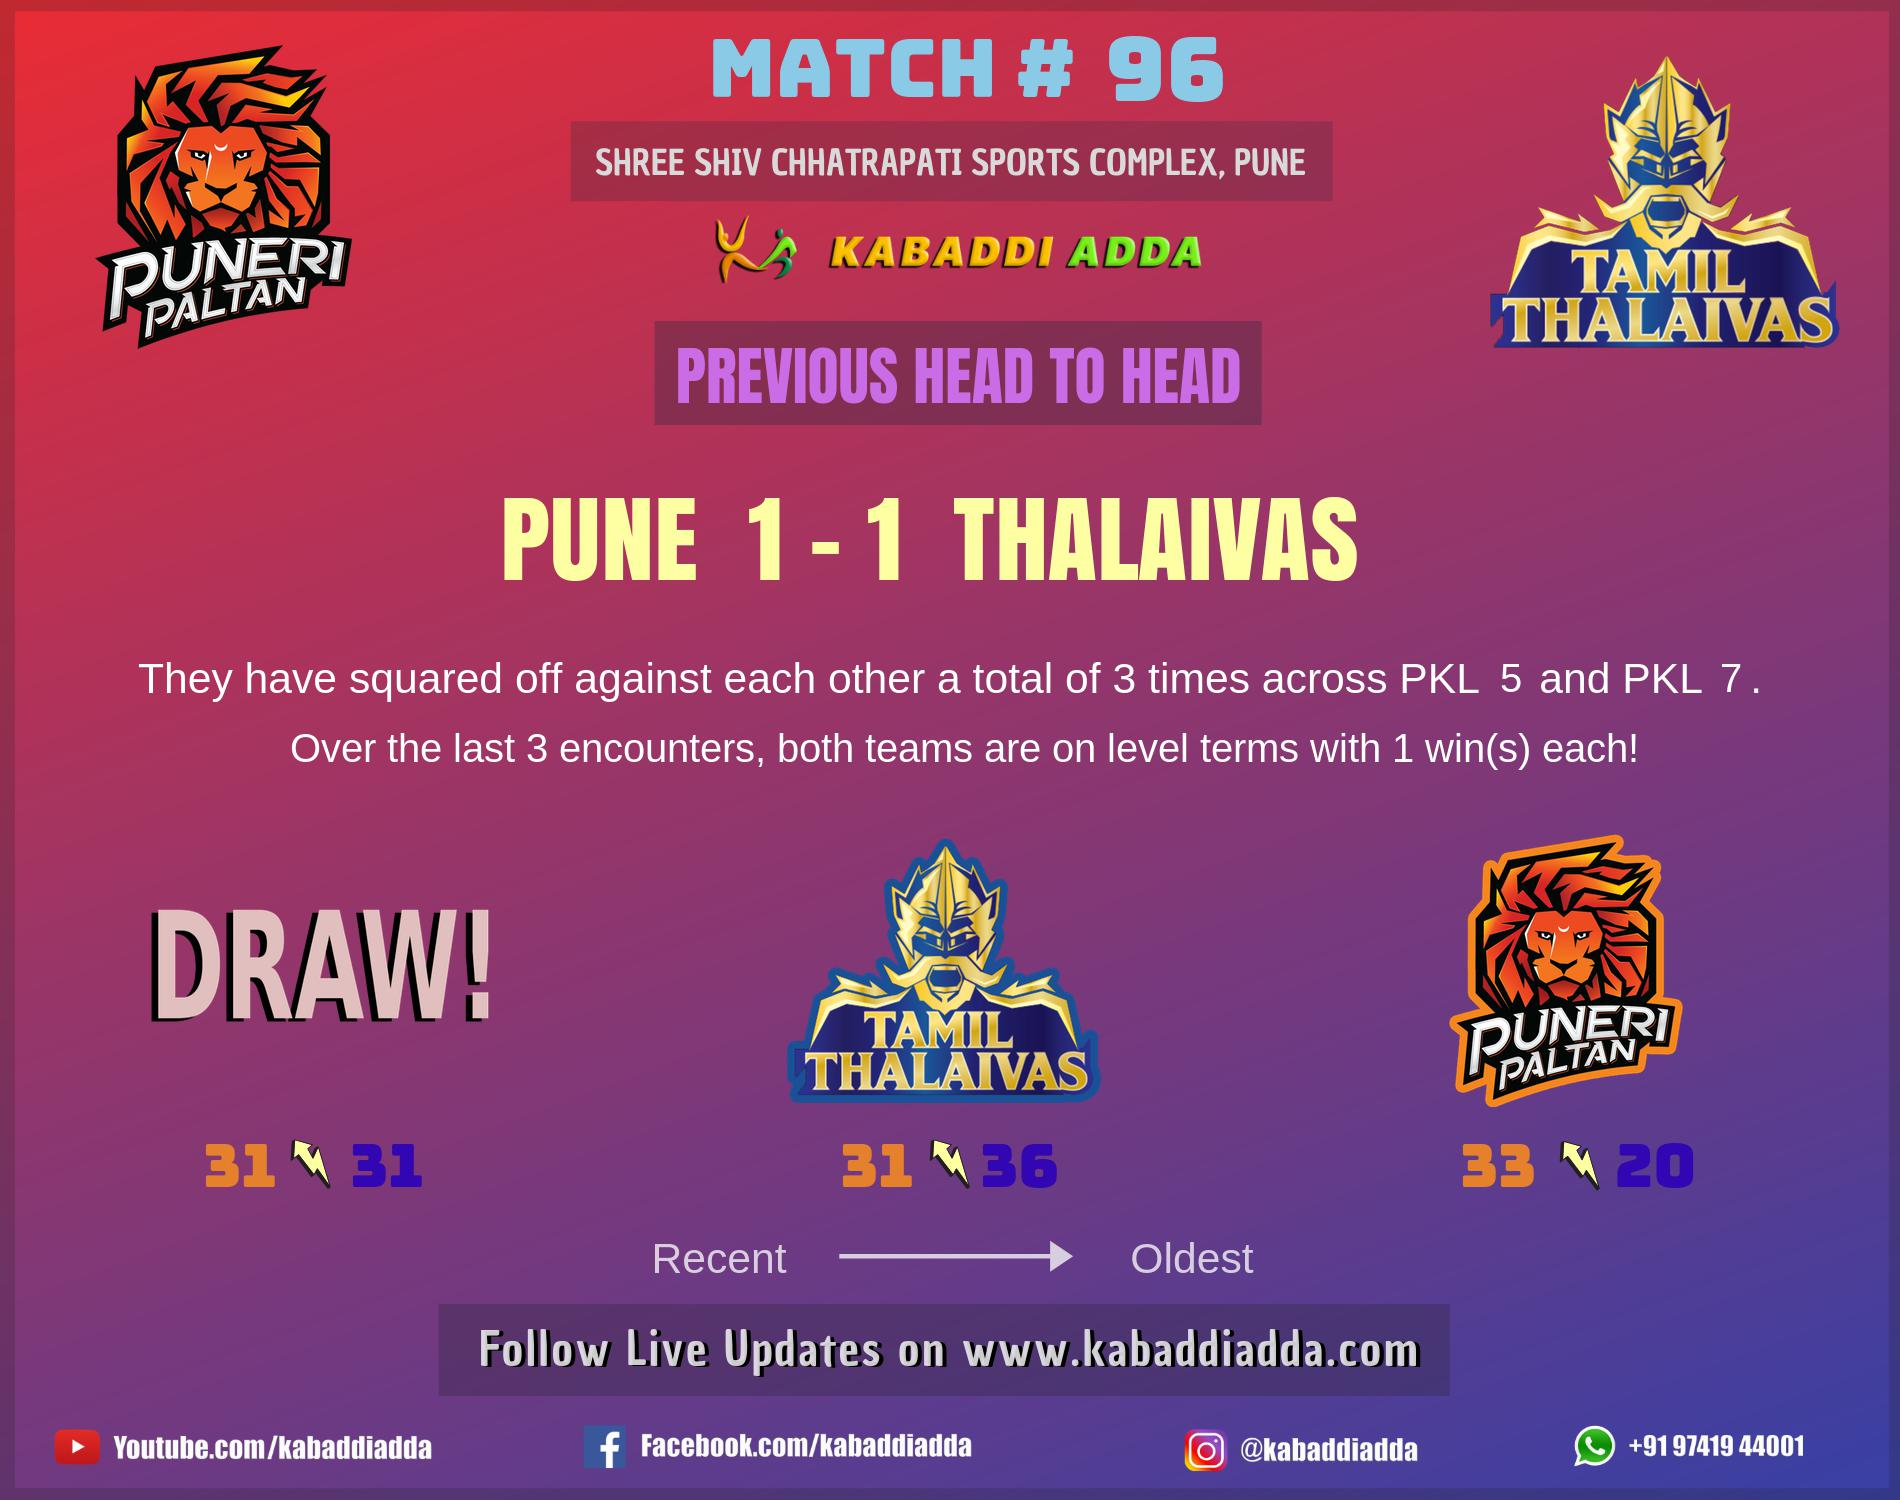 Puneri Paltan and Tamil Thalaivas